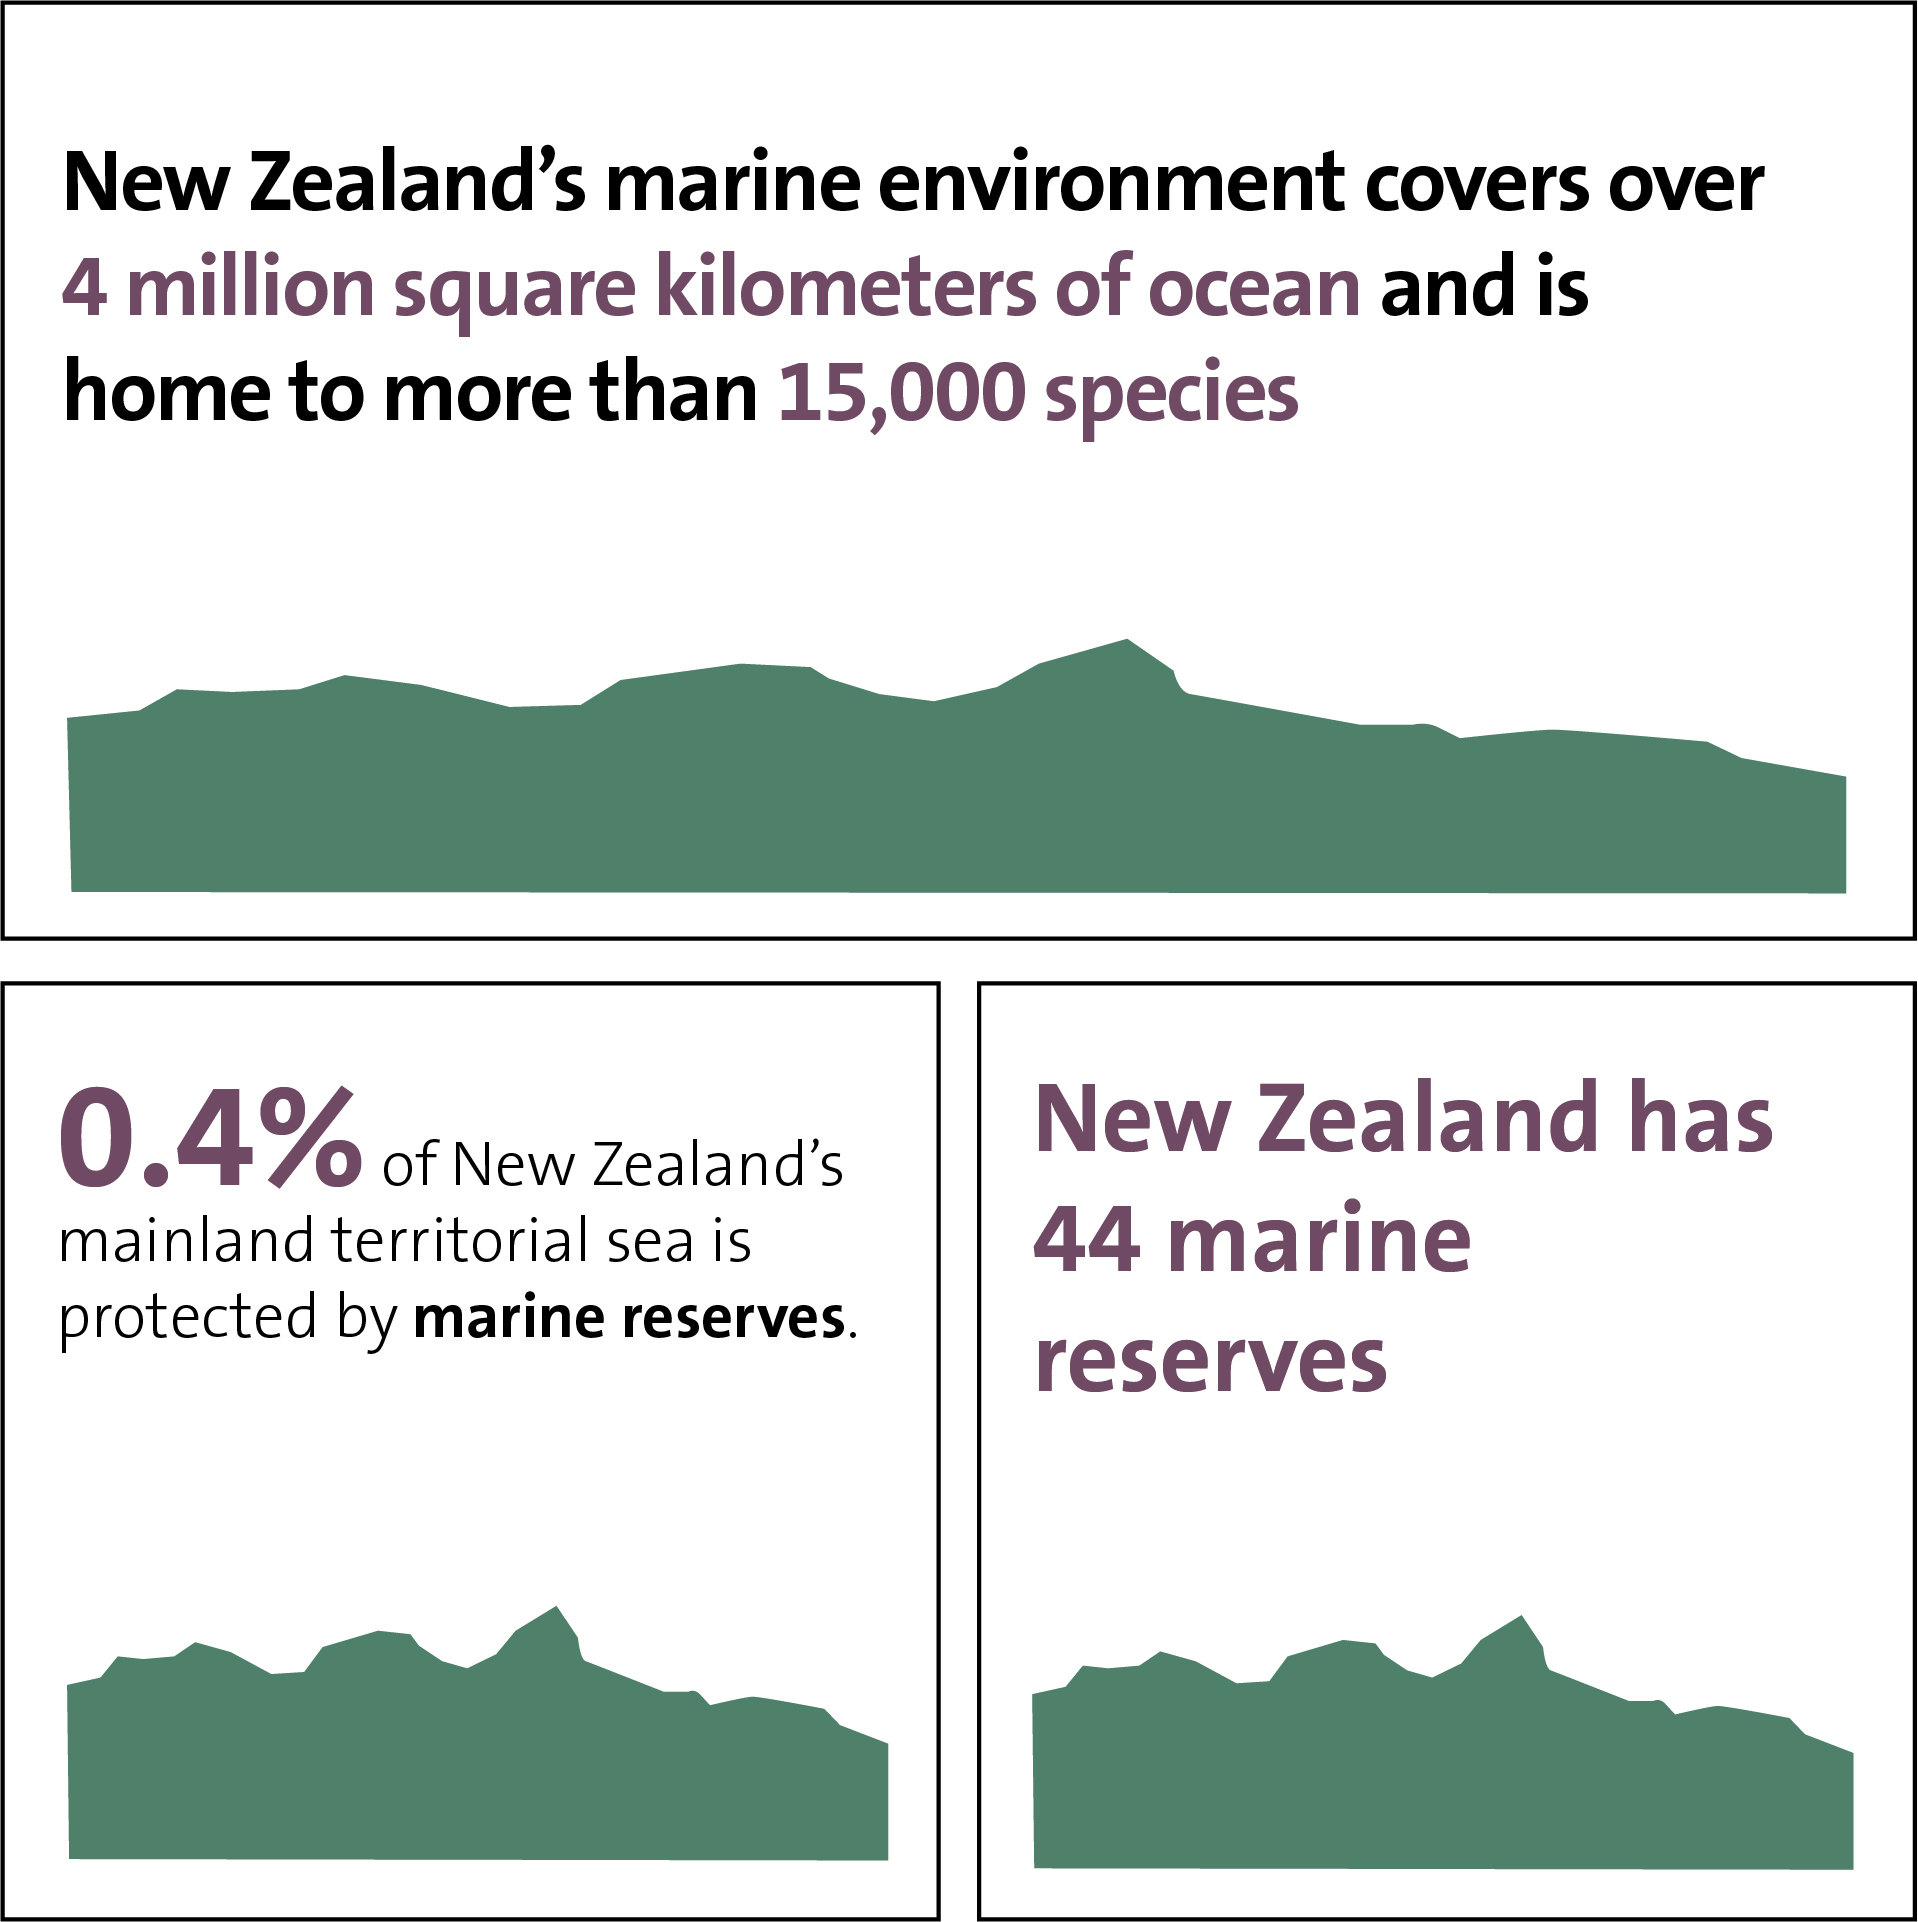 Facts about the marine environment